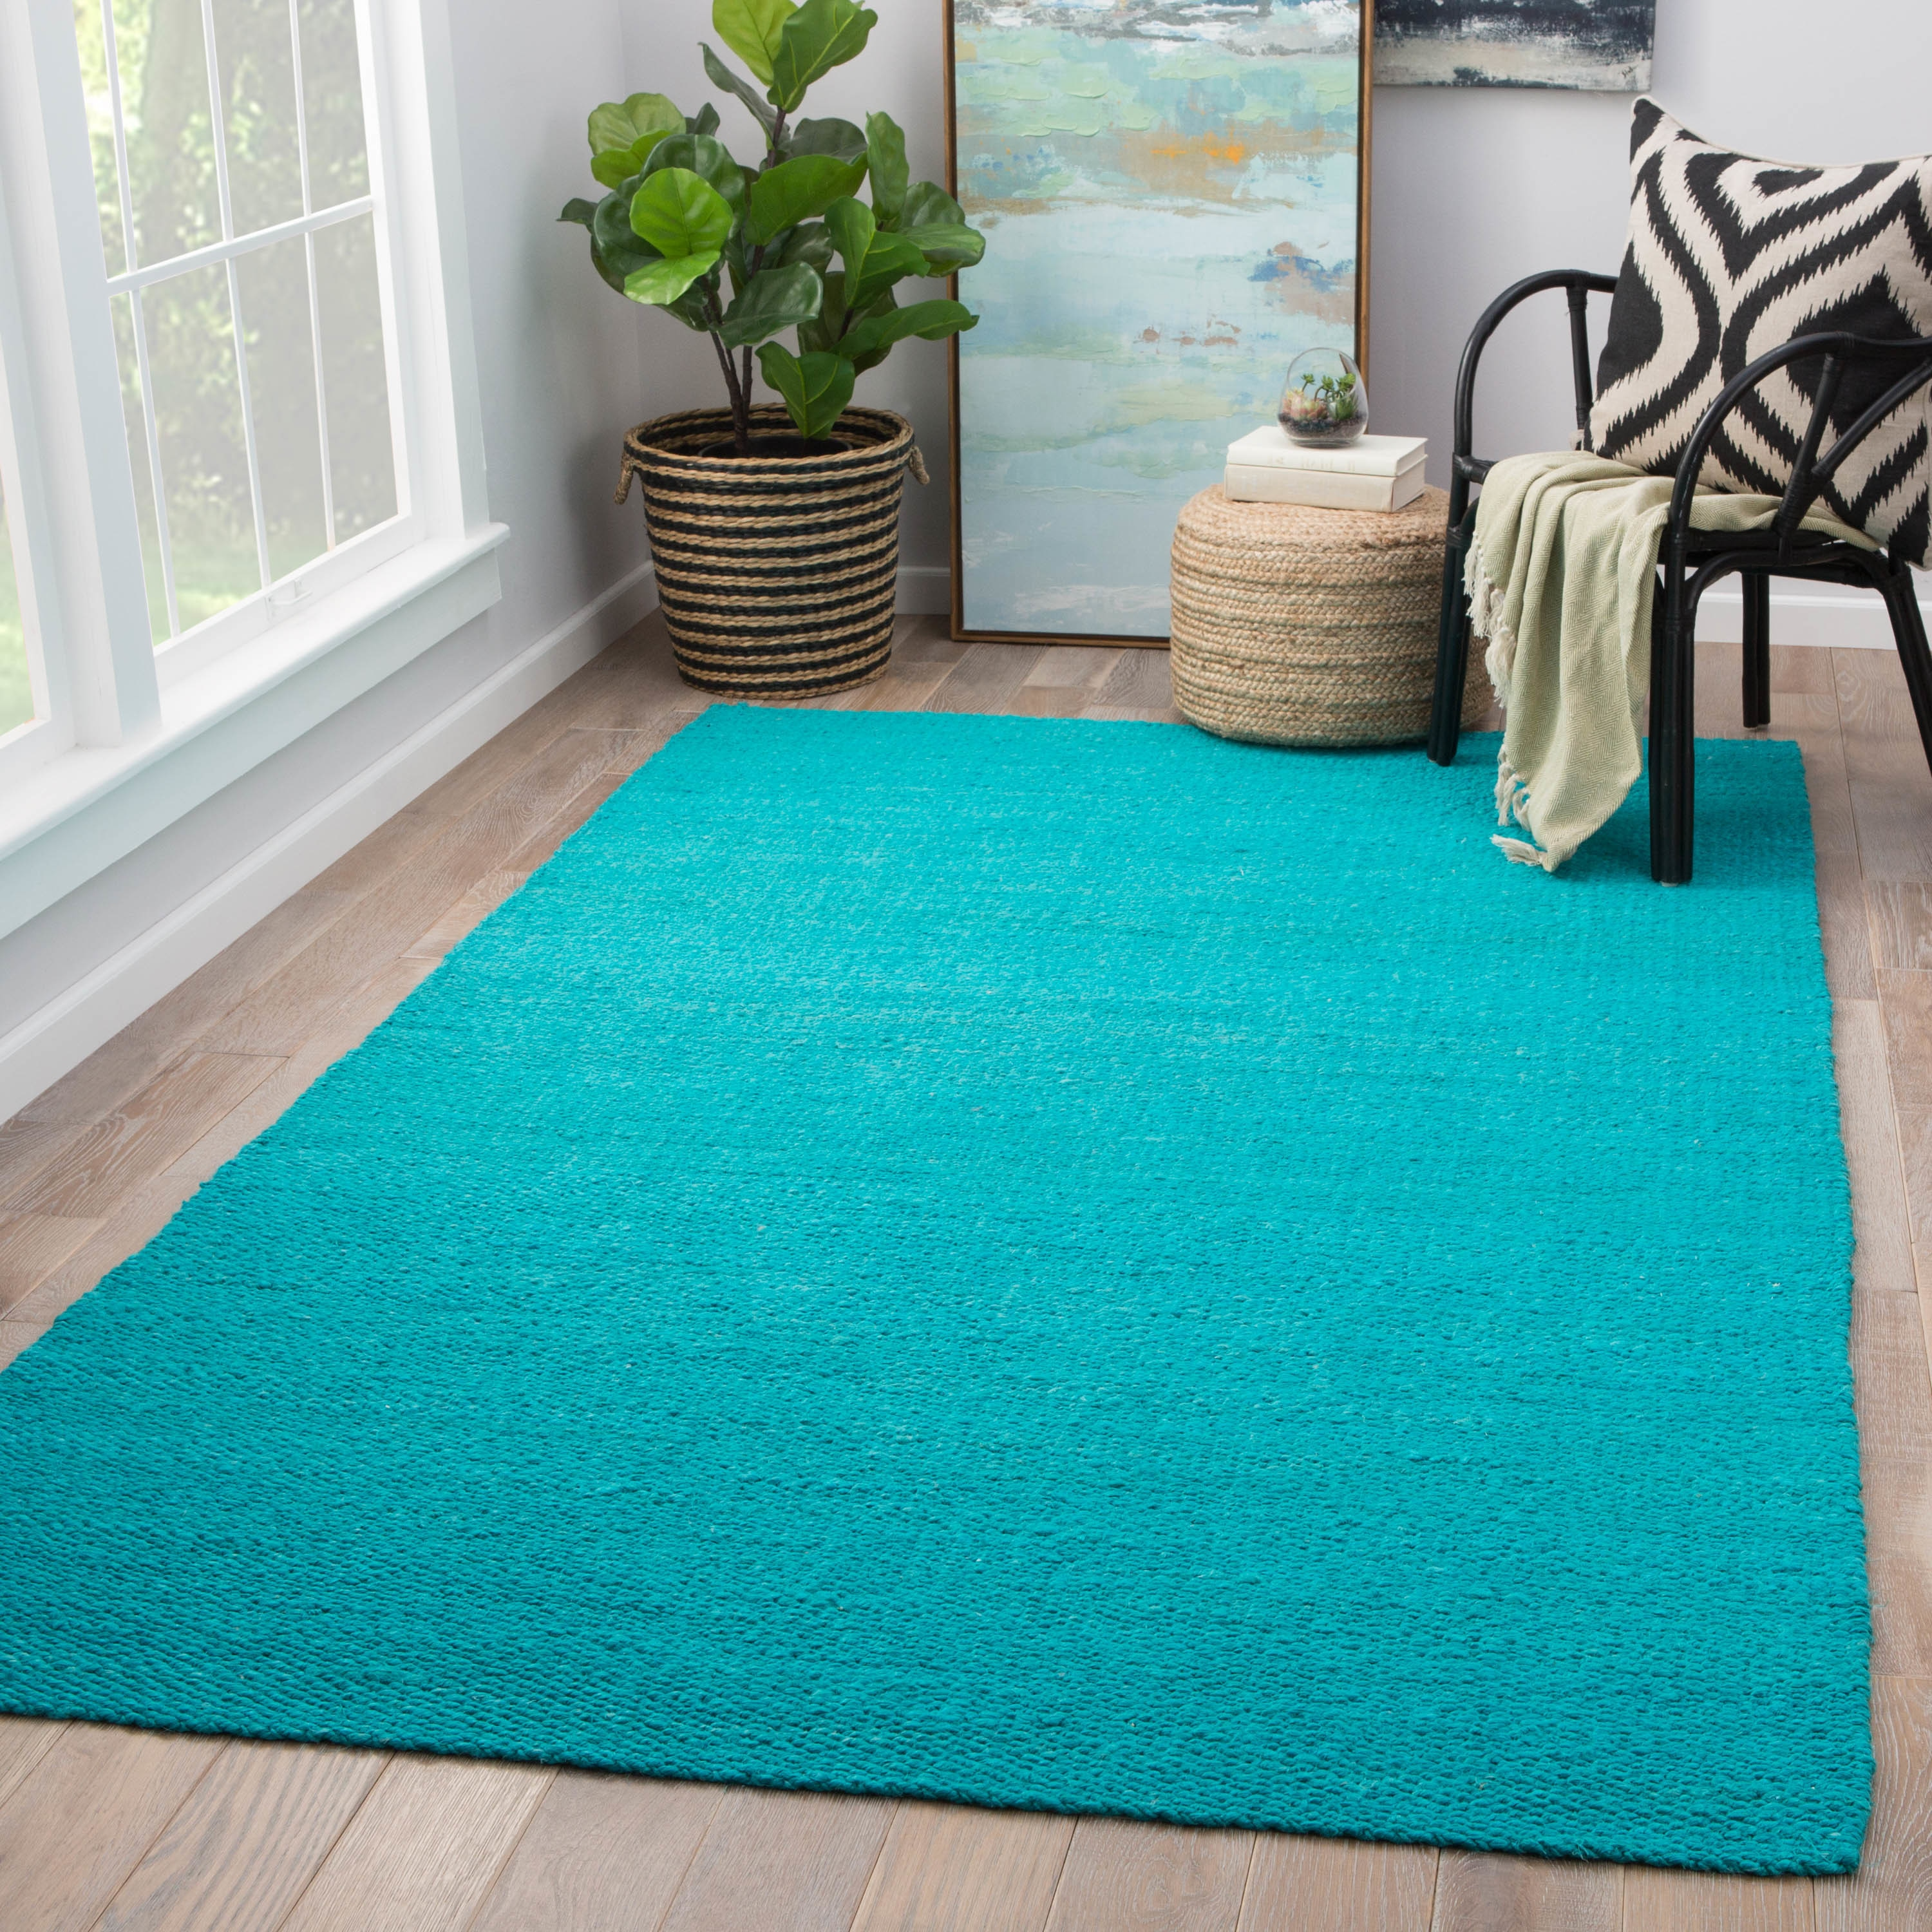 Shop Quito Solid Turquoise Natural Jute Area Rug 8 X 10 Free